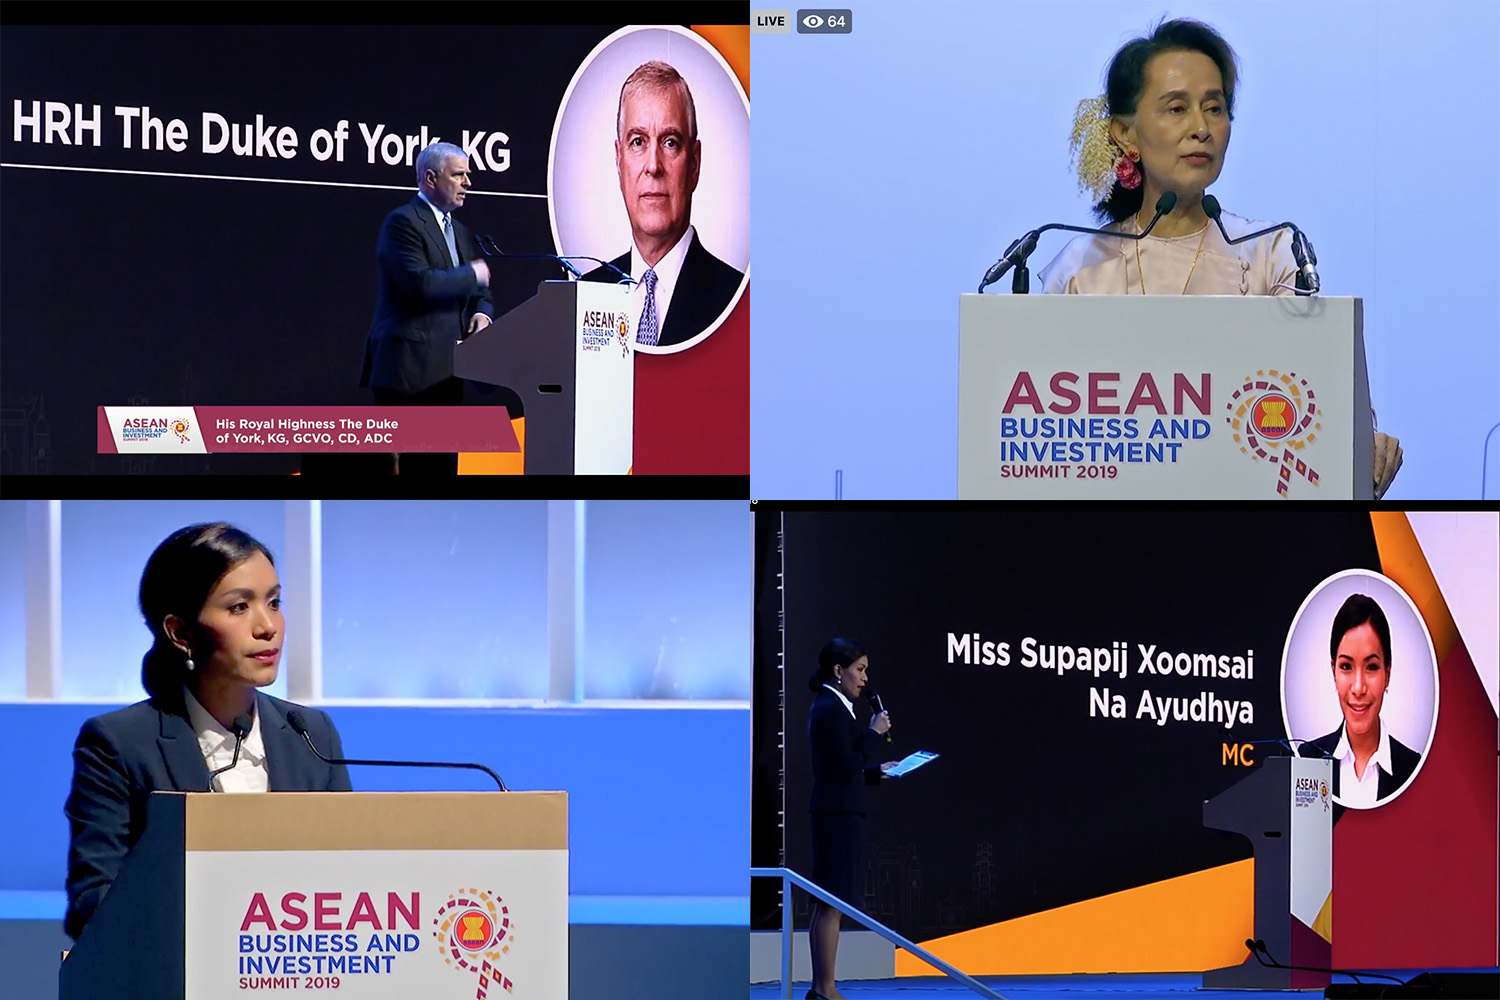 ASEAN ABIS SUMMIT 2019